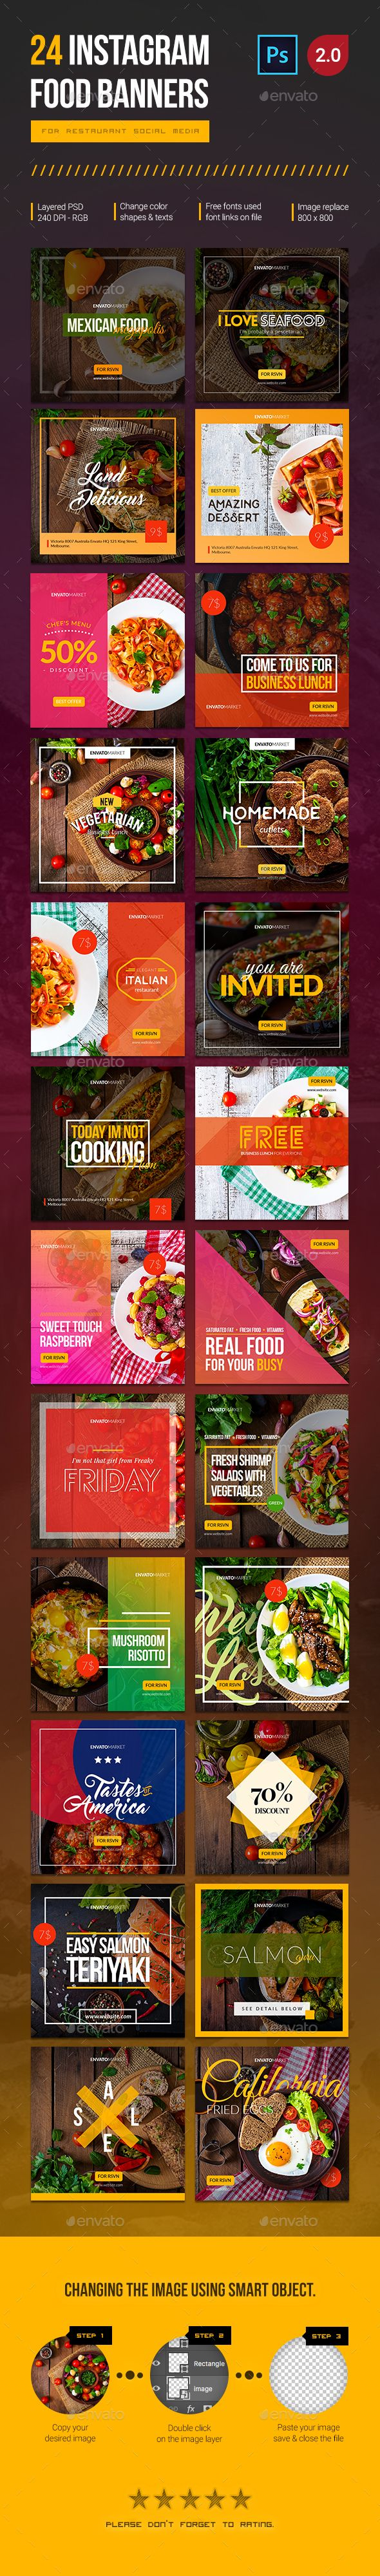 24 Instagram Food Banners - Social Media Web Elements